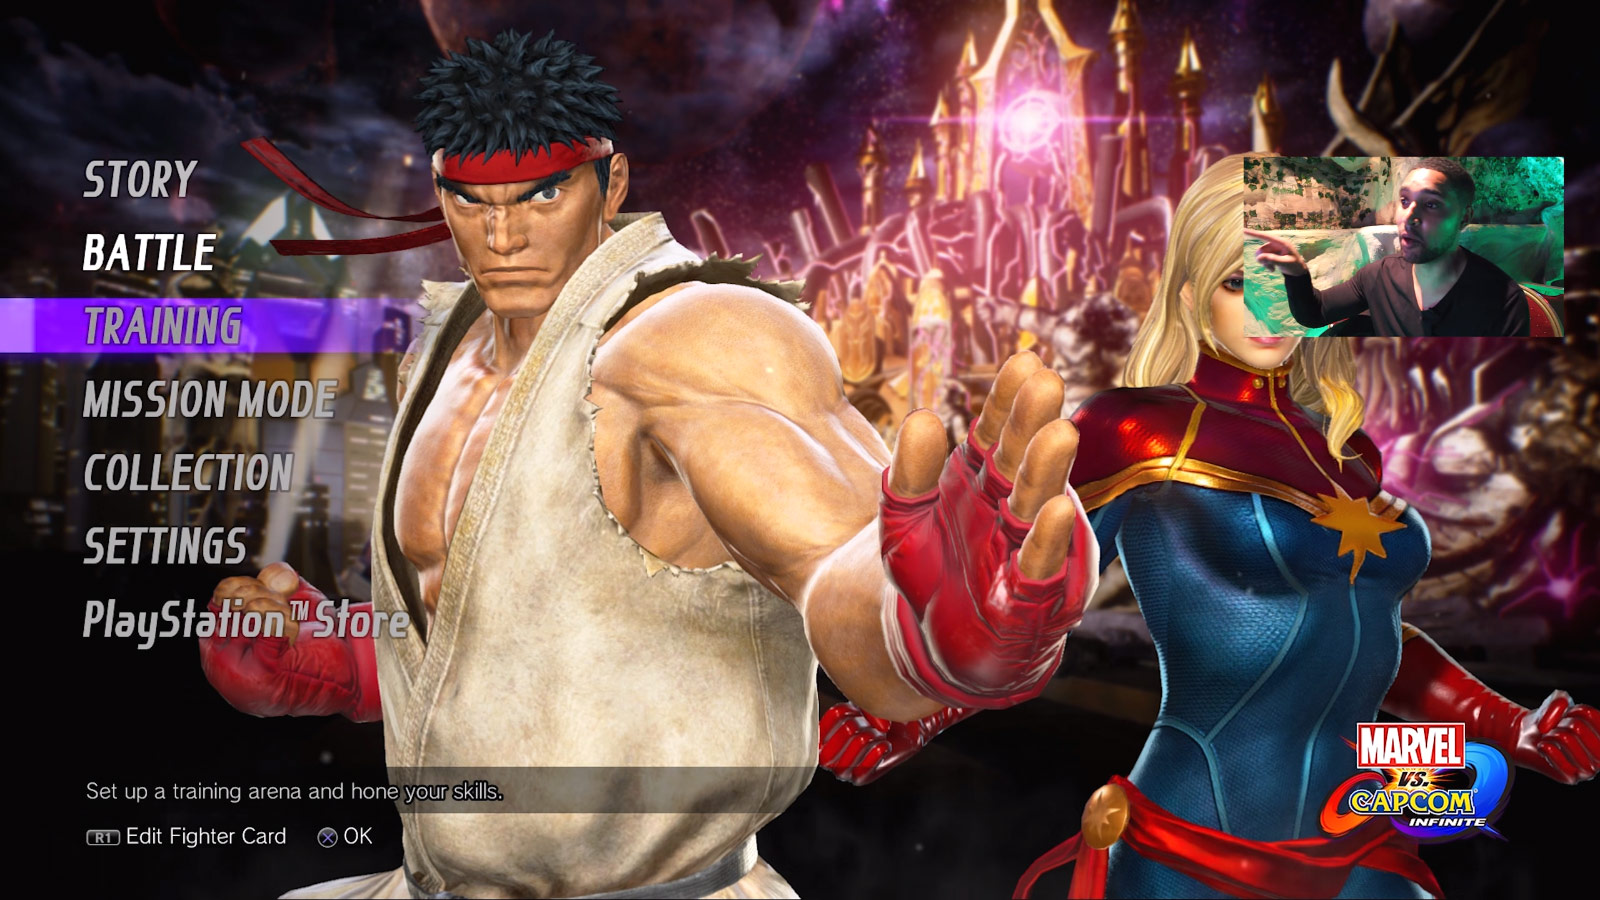 Marvel vs. Capcom: Infinite character select screen and menus 1 out of 6 image gallery